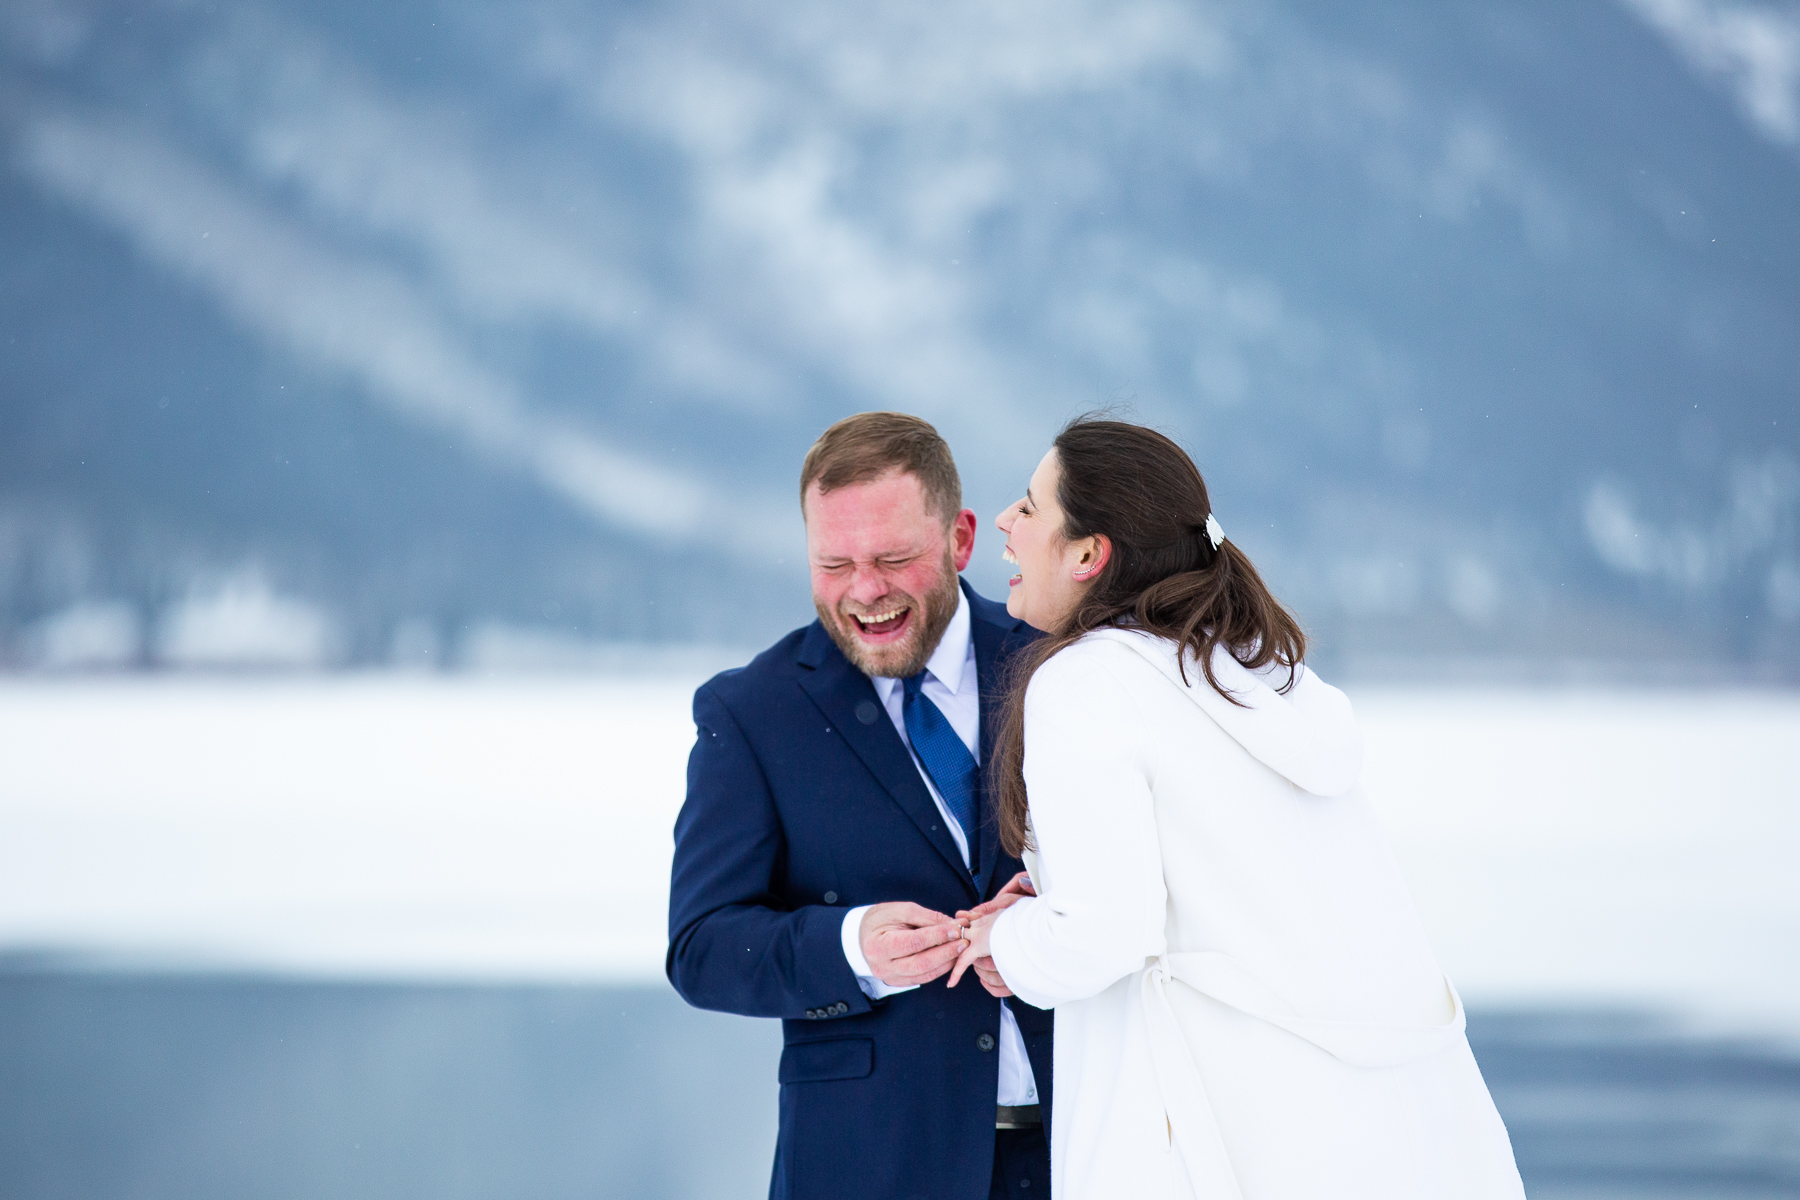 Twin Lakes Colorado Wedding Photographer | The bride and groom crack up laughing as they exchange rings